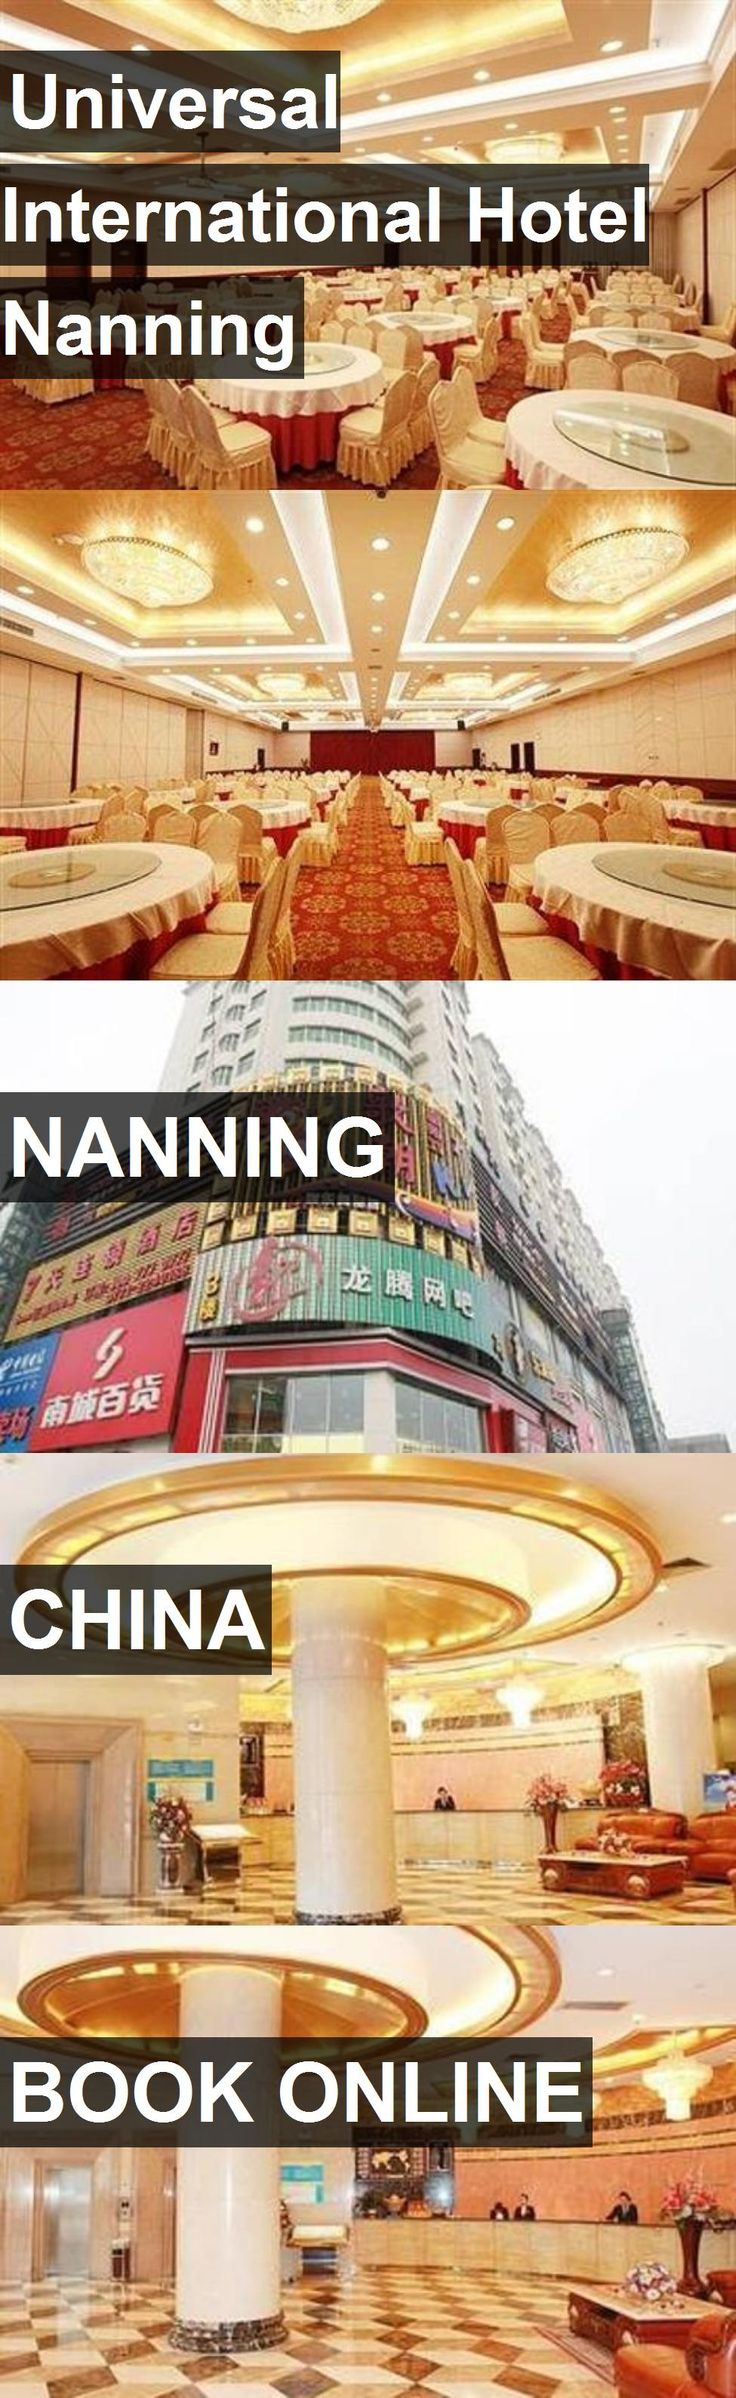 Hotel Universal International Hotel Nanning in Nanning, China. For more information, photos, reviews and best prices please follow the link. #China #Nanning #UniversalInternationalHotelNanning #hotel #travel #vacation